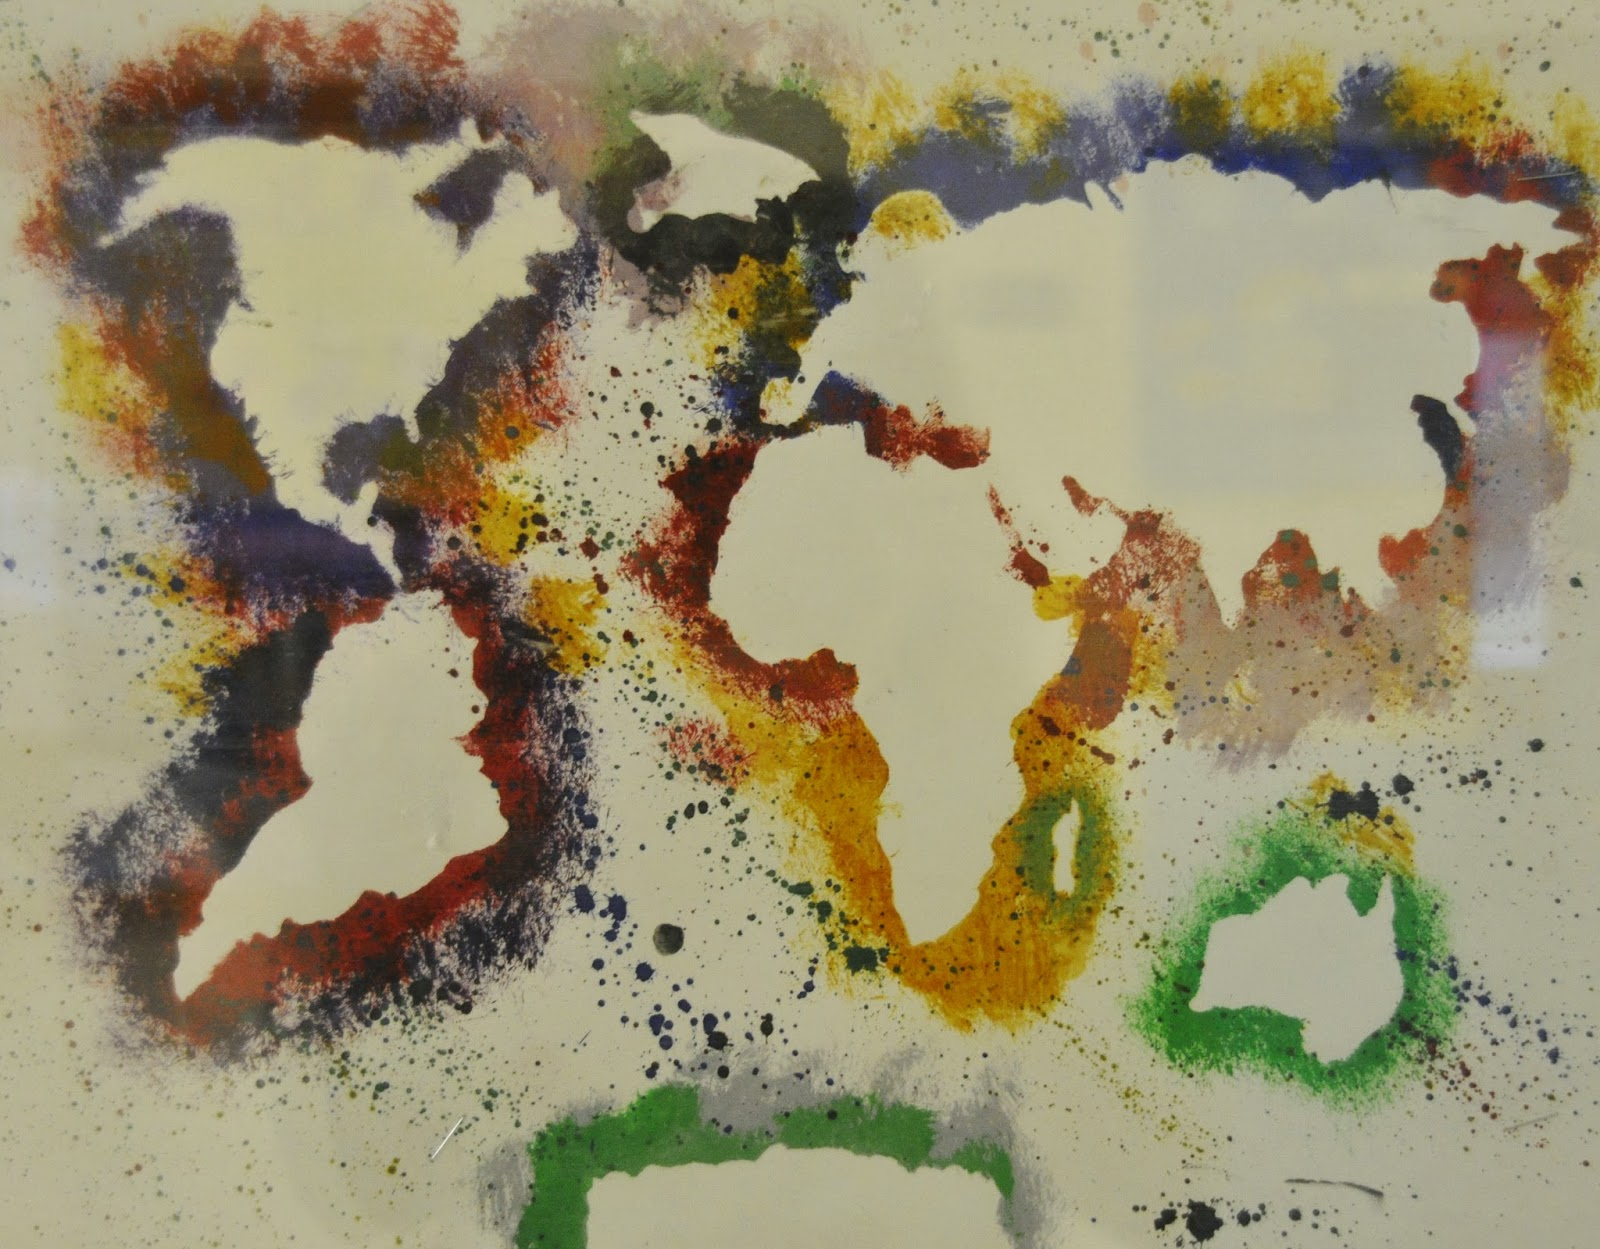 Saatchi Art: Emotional Geography Painting by Carmelo Canales